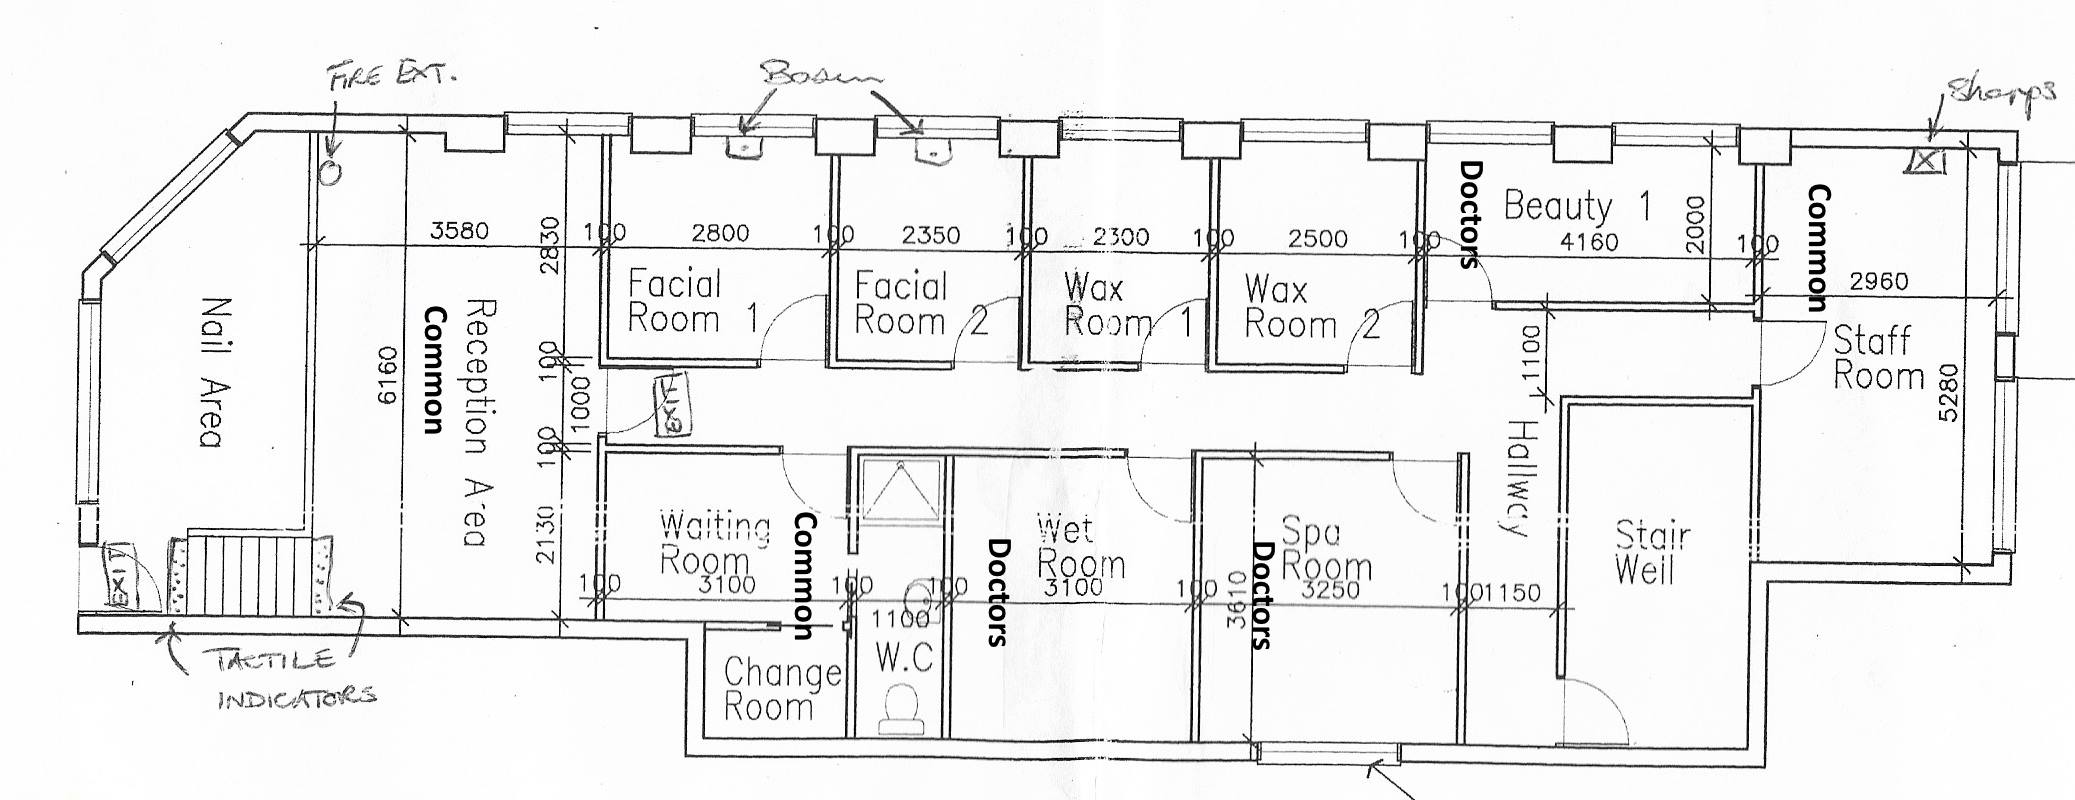 plans of medi spa.jpg